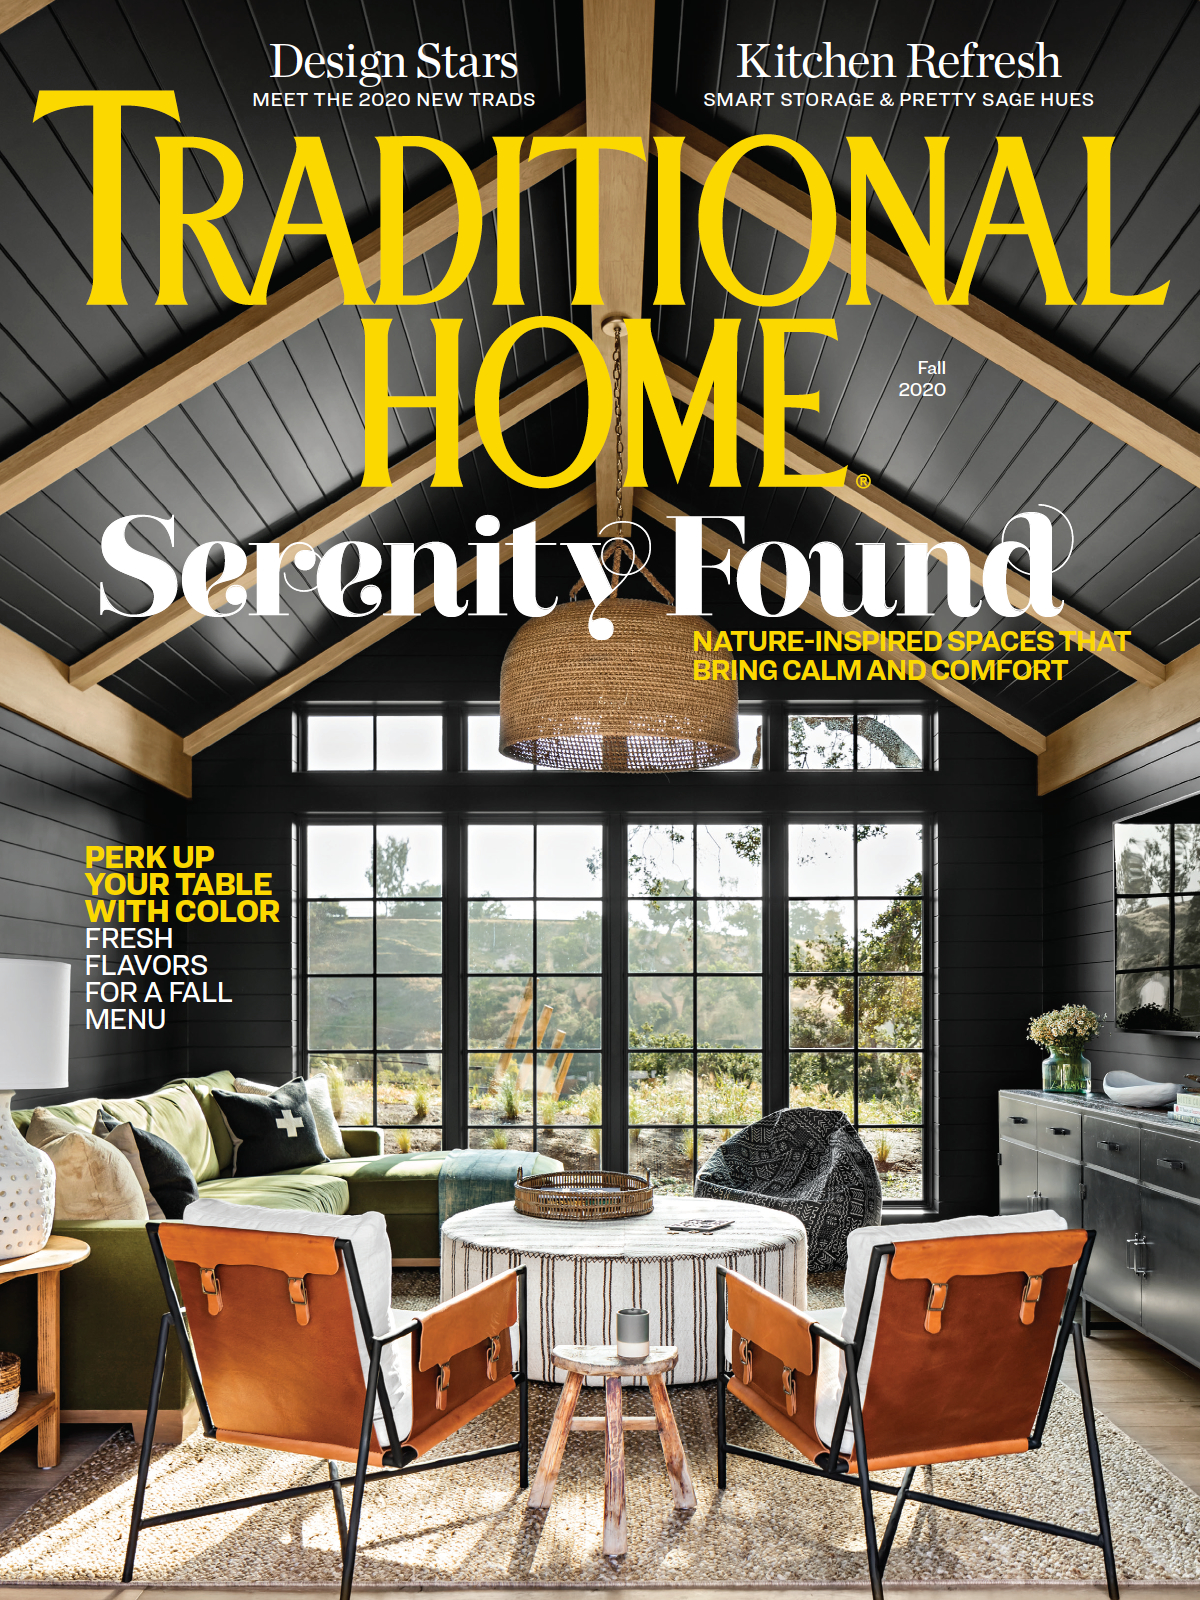 blackband_design_press_santa_ynez_traditional_home_cover